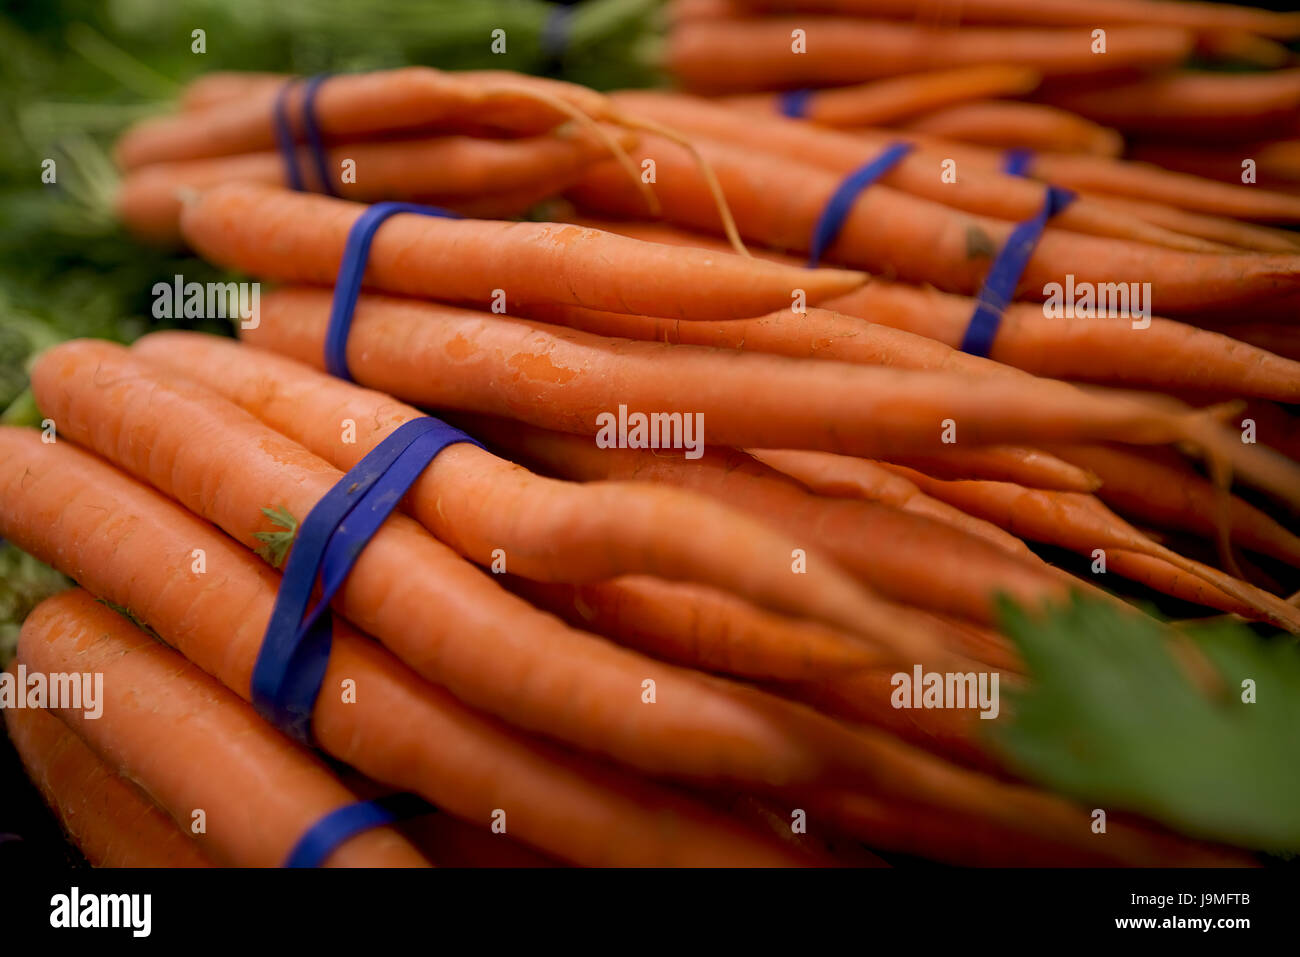 Bundles of carrots for sale in a vegetable market. Stock Photo